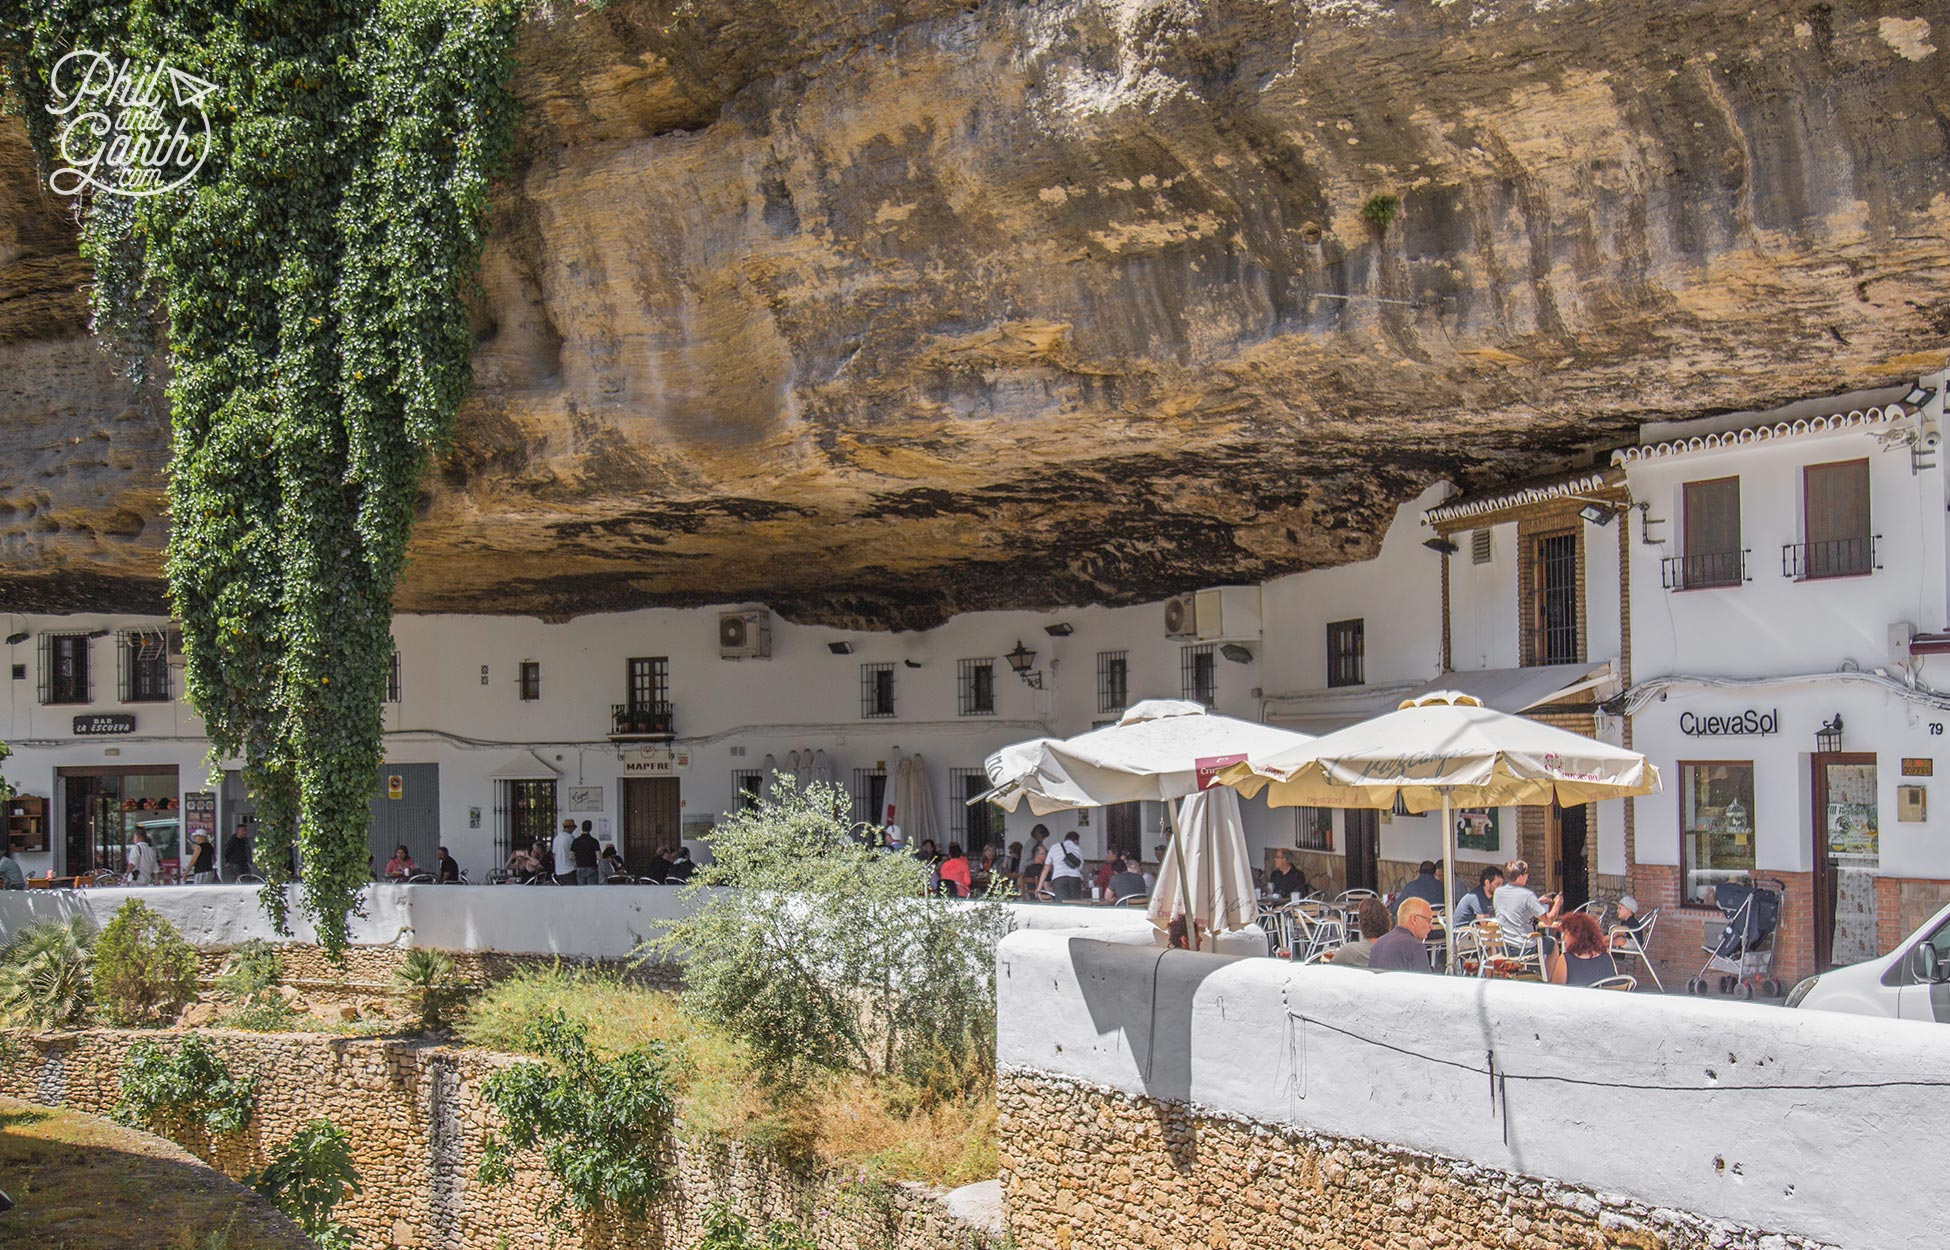 The extraordinary appearance of Setenil de las Bodegas